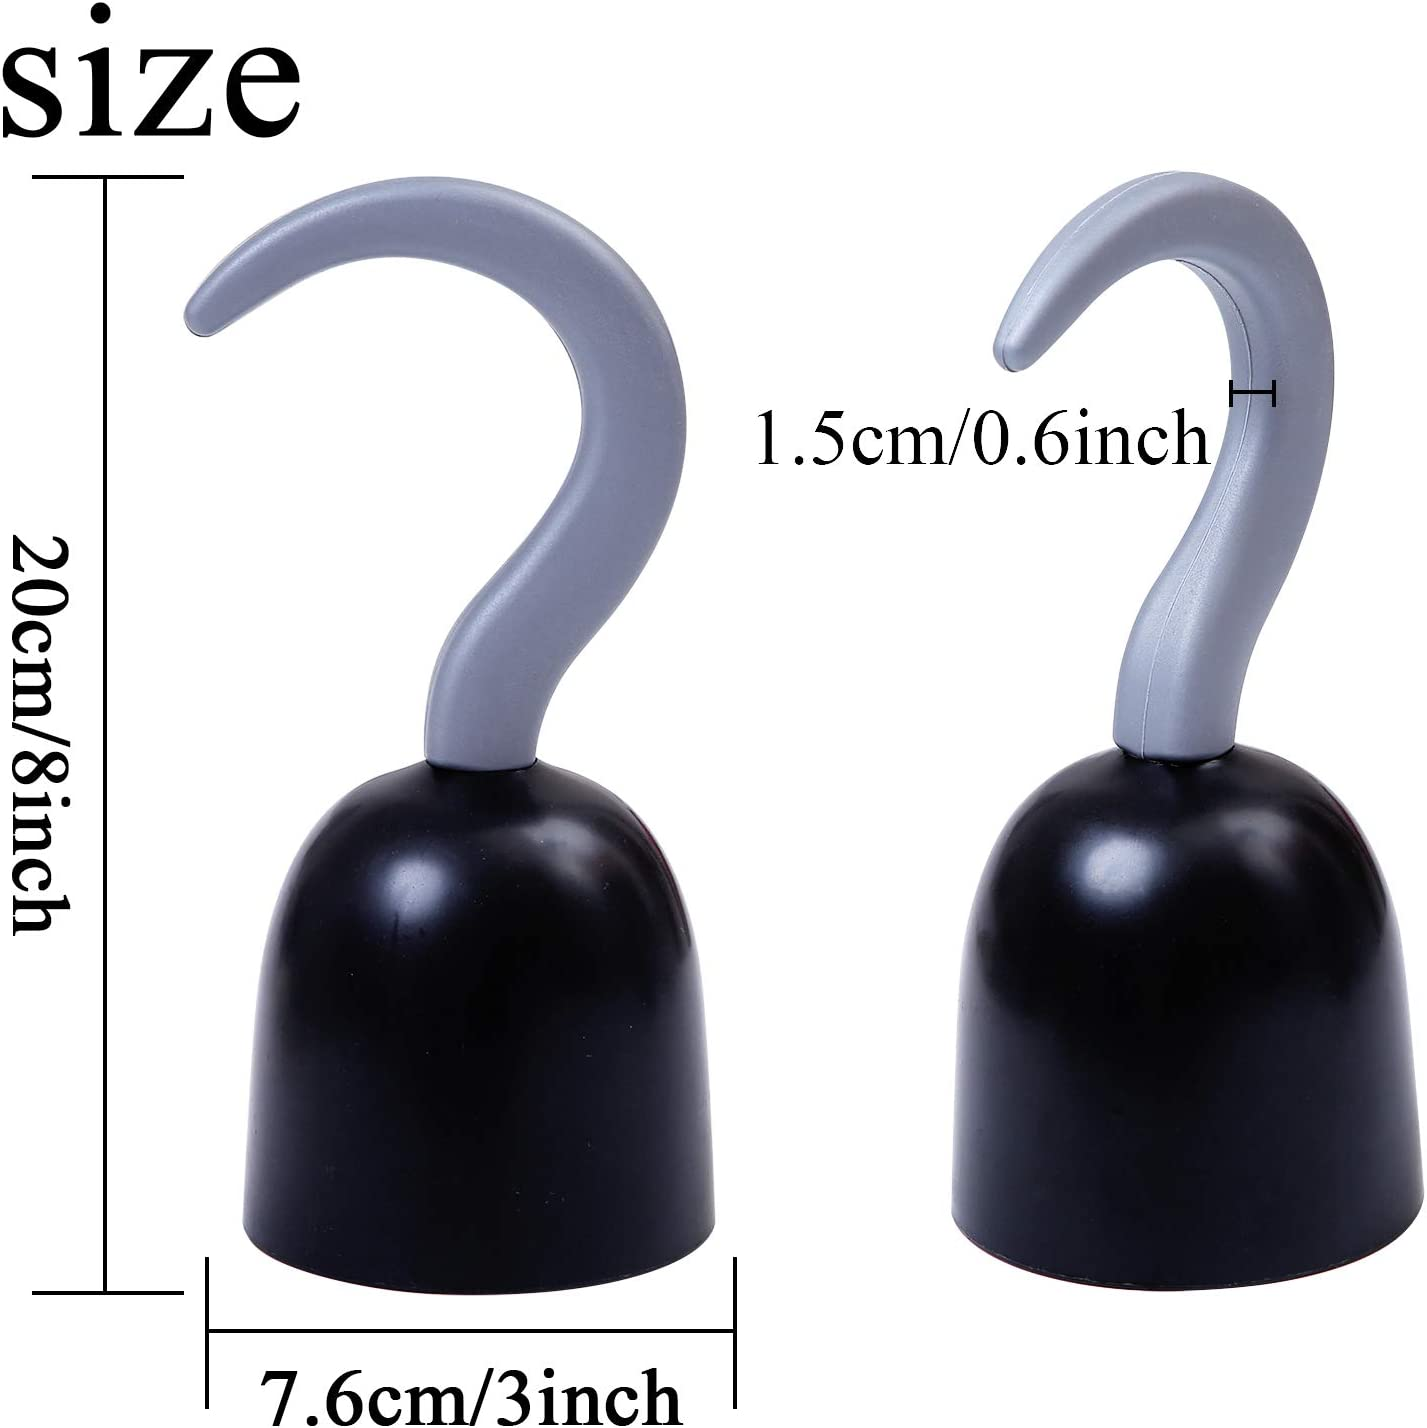 URATOT 8 Pieces Pirate Hooks Captain Hook Hand Plastic Hook Pirate Costume Accessory for Halloween Christmas Children Party